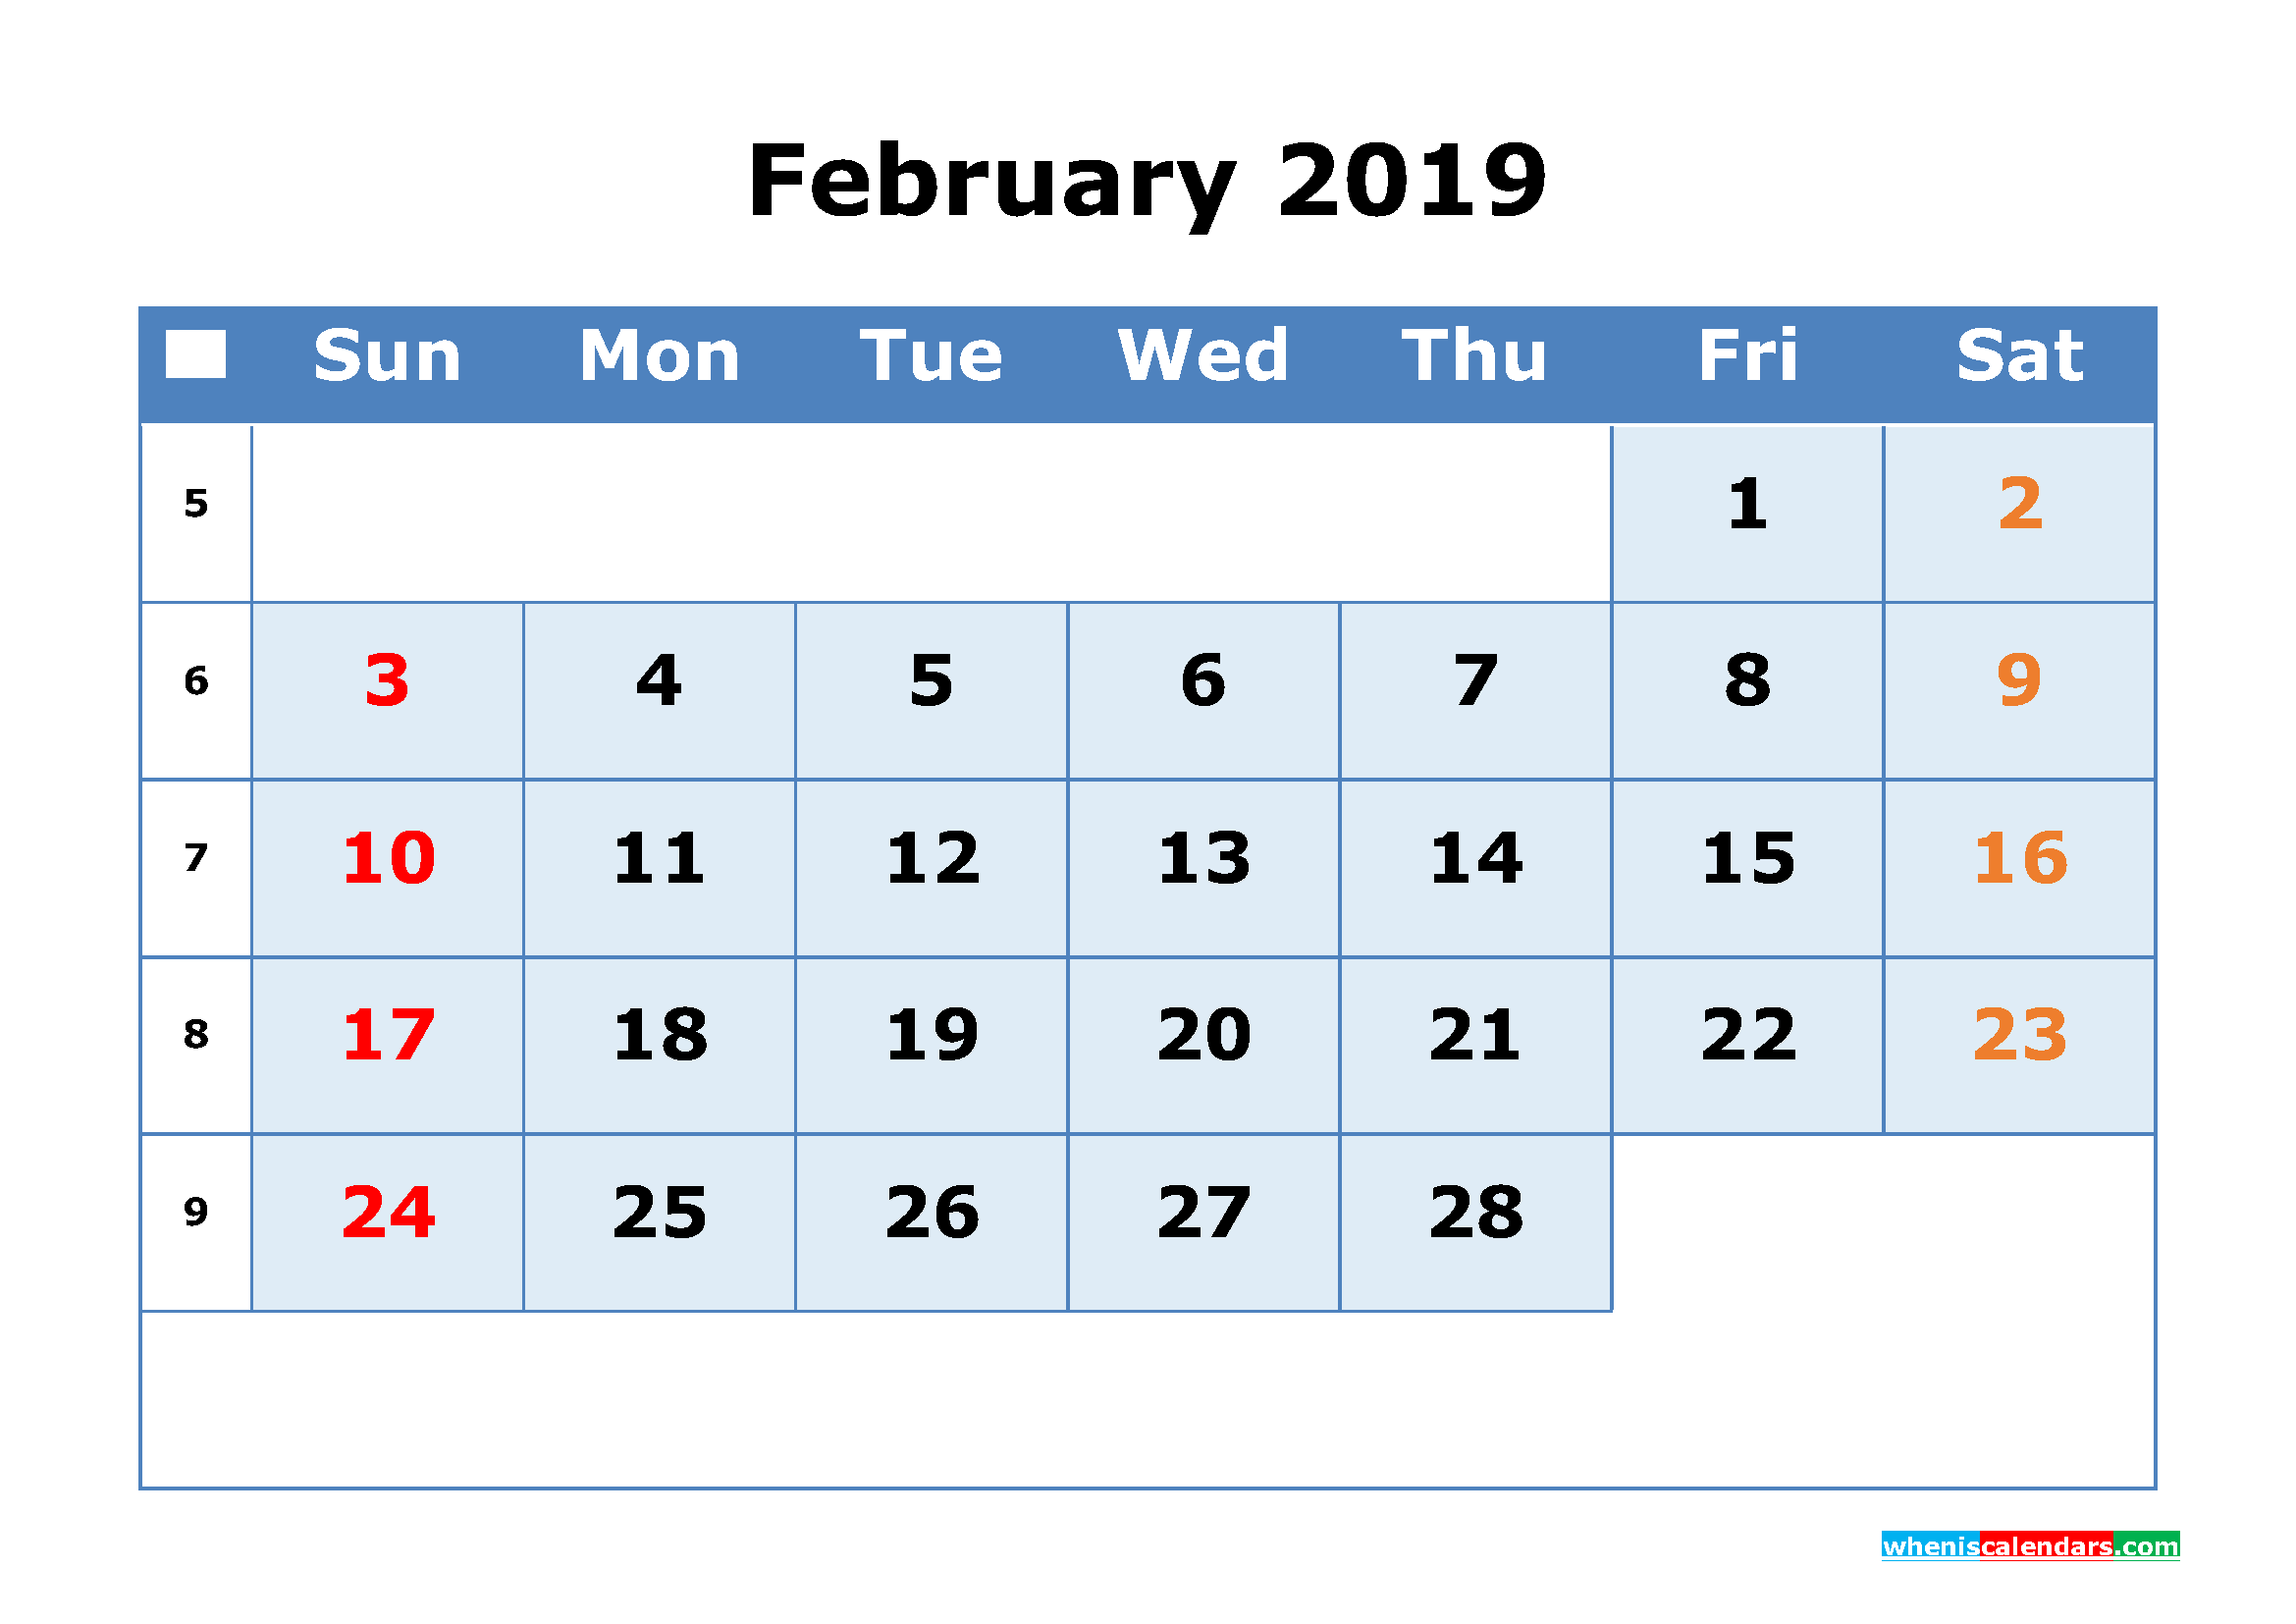 February 2019 Printable Calendar with Week Numbers as PDF, JPG